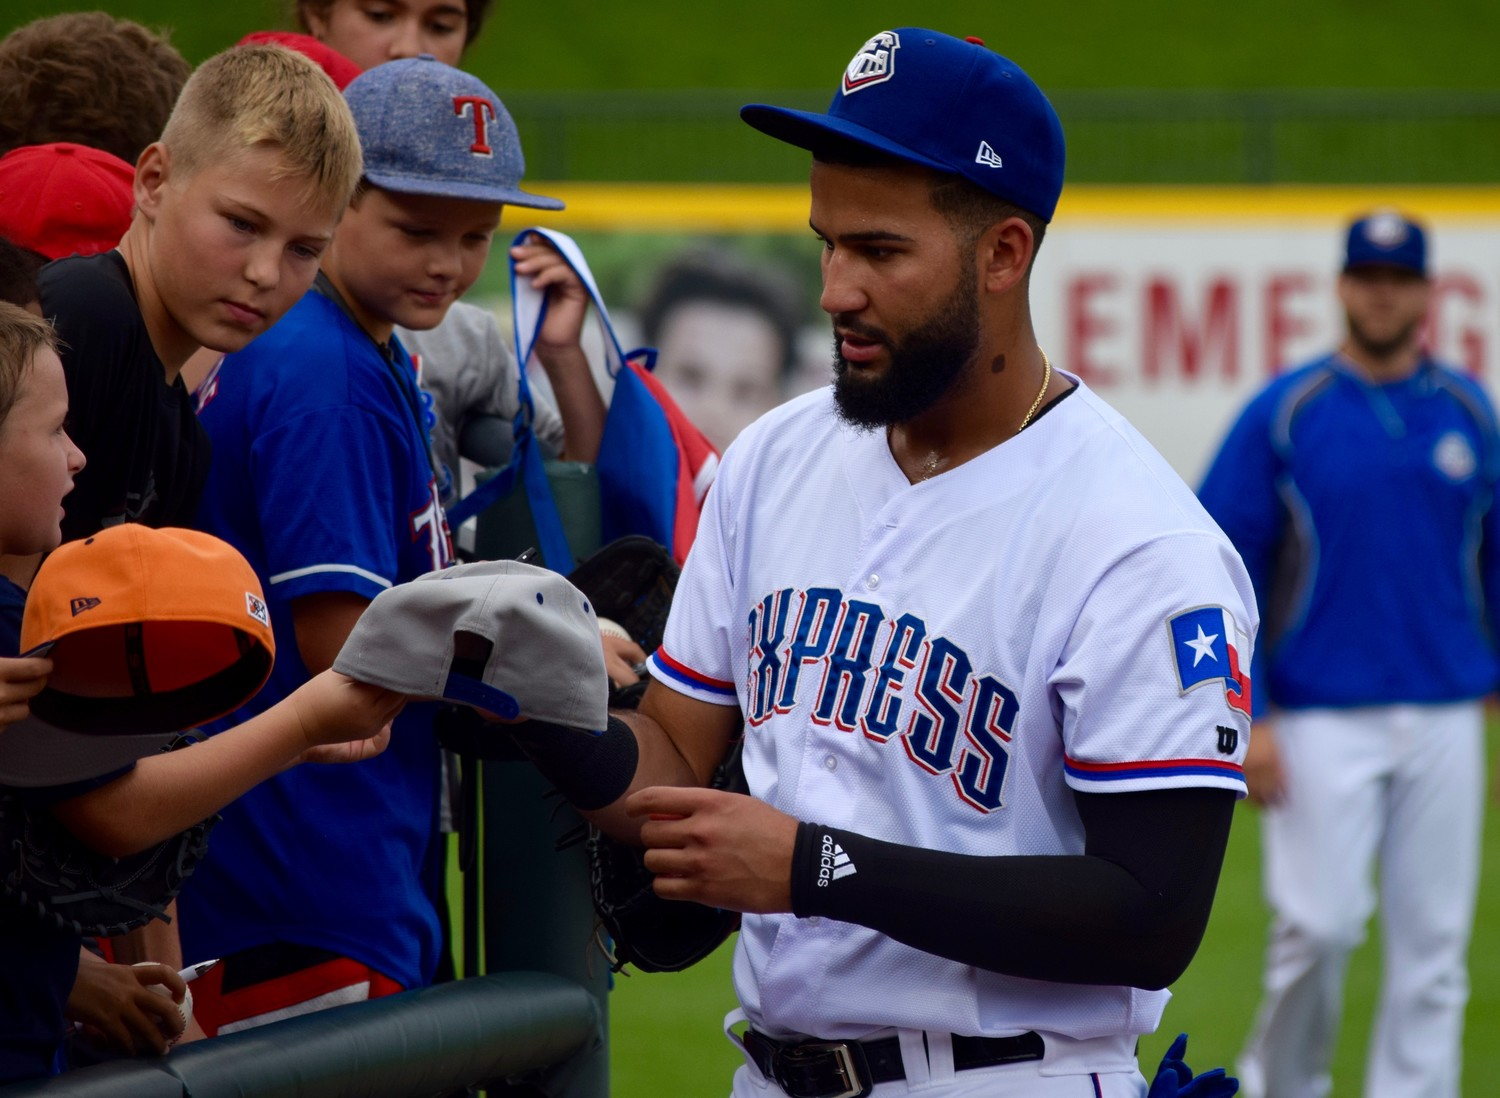 Nomar Mazara, who signed with the Rangers as an international free agent for a then-record $4.95 million and hit a home run in his major league debut, spent pregame on Sunday stretching in the outfield before signing autographs for anybody that asked him.